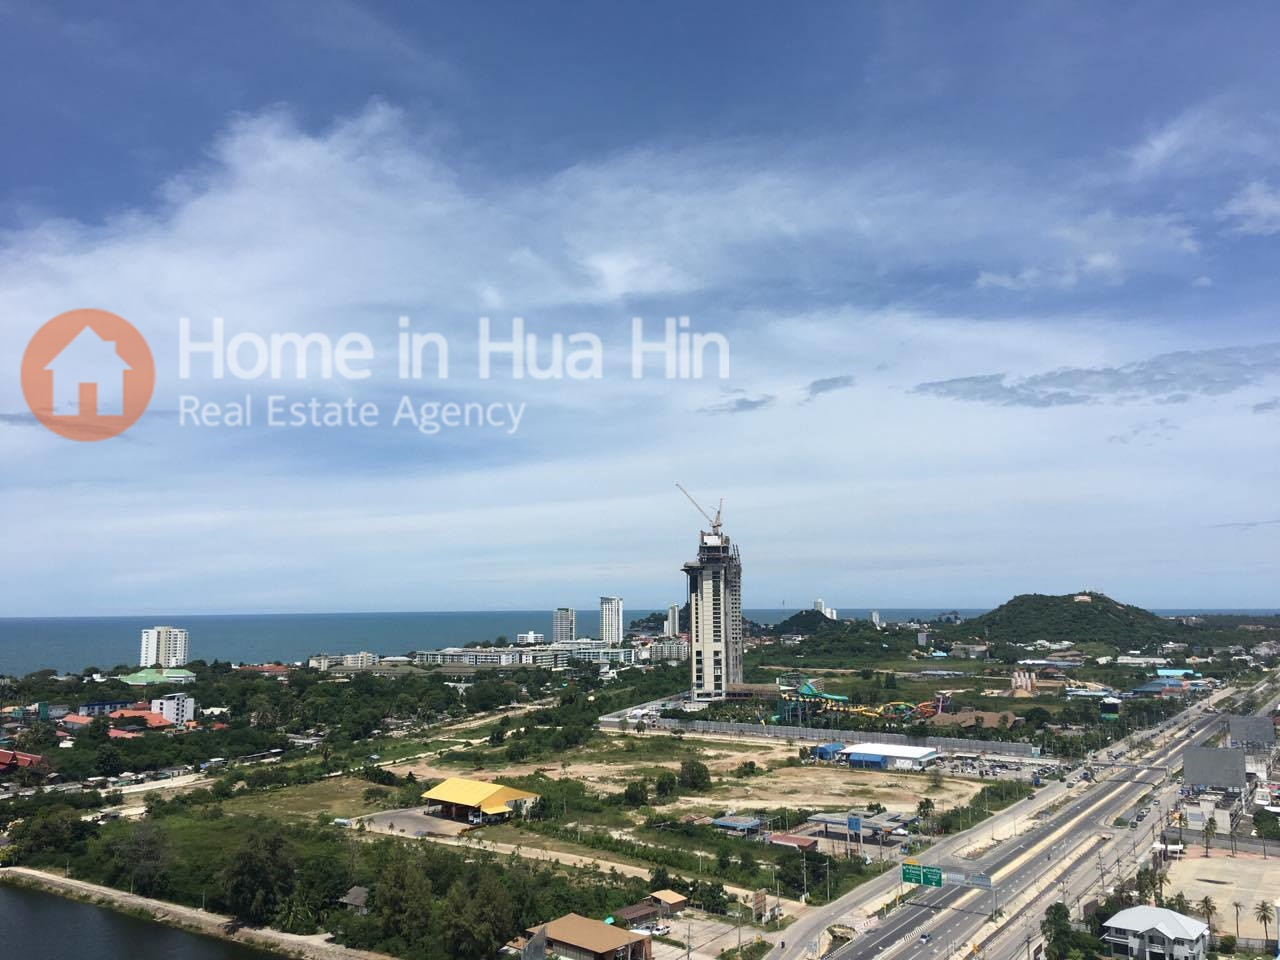 1 Bedroom Condo For Sale in Hua Hin!